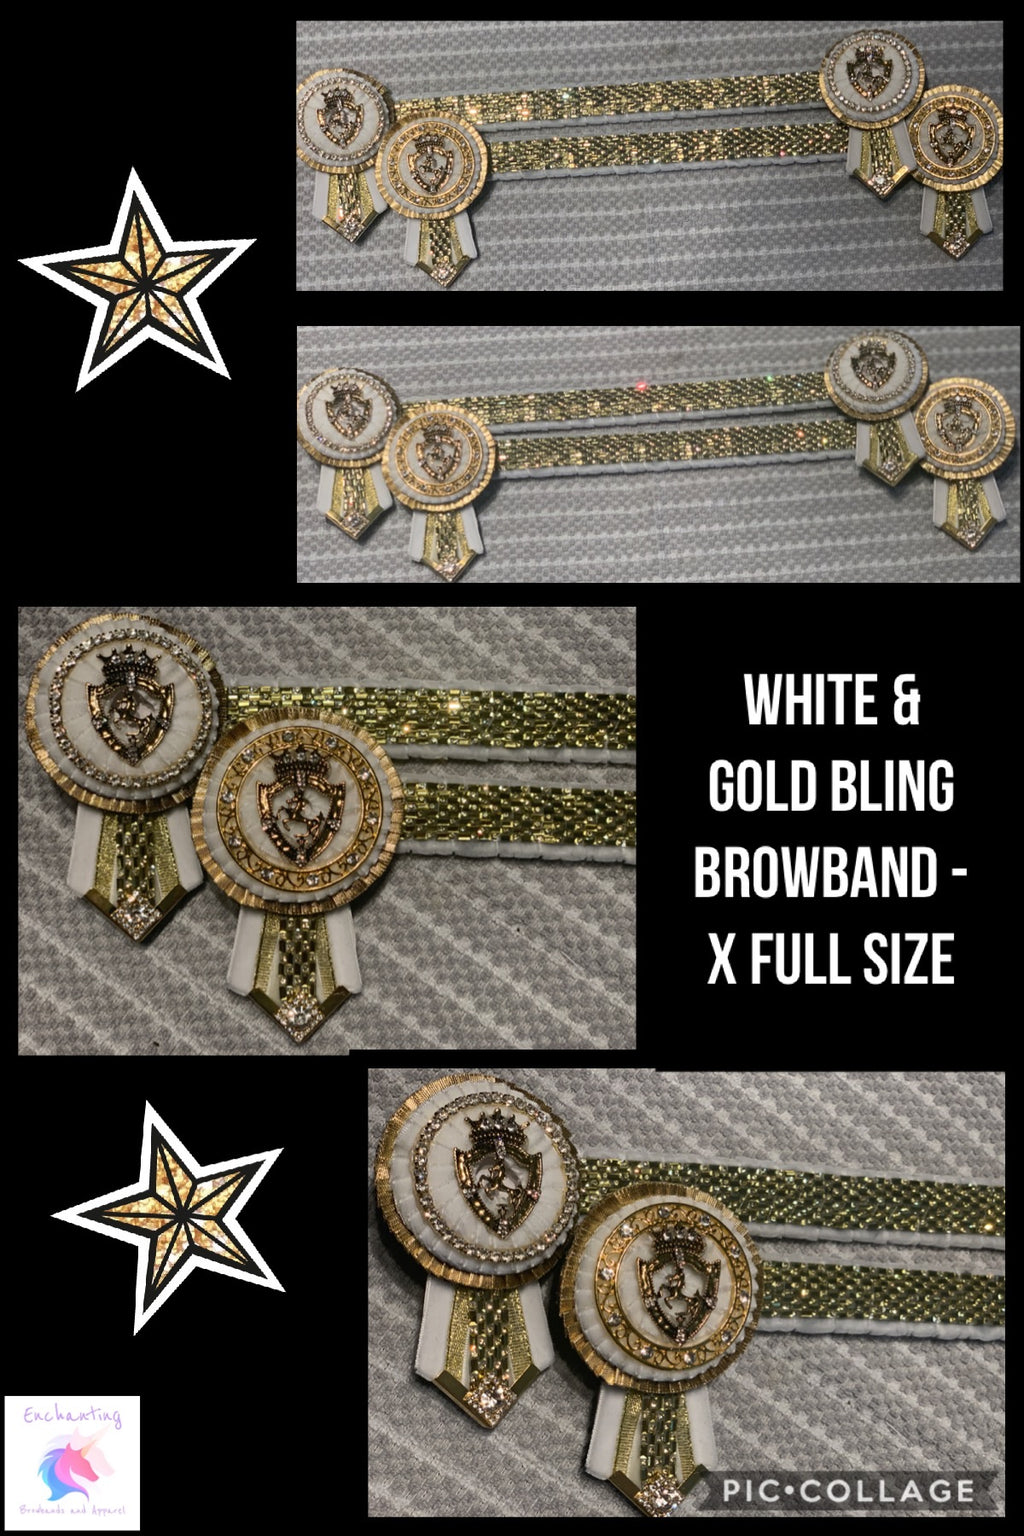 White & gold bling browband